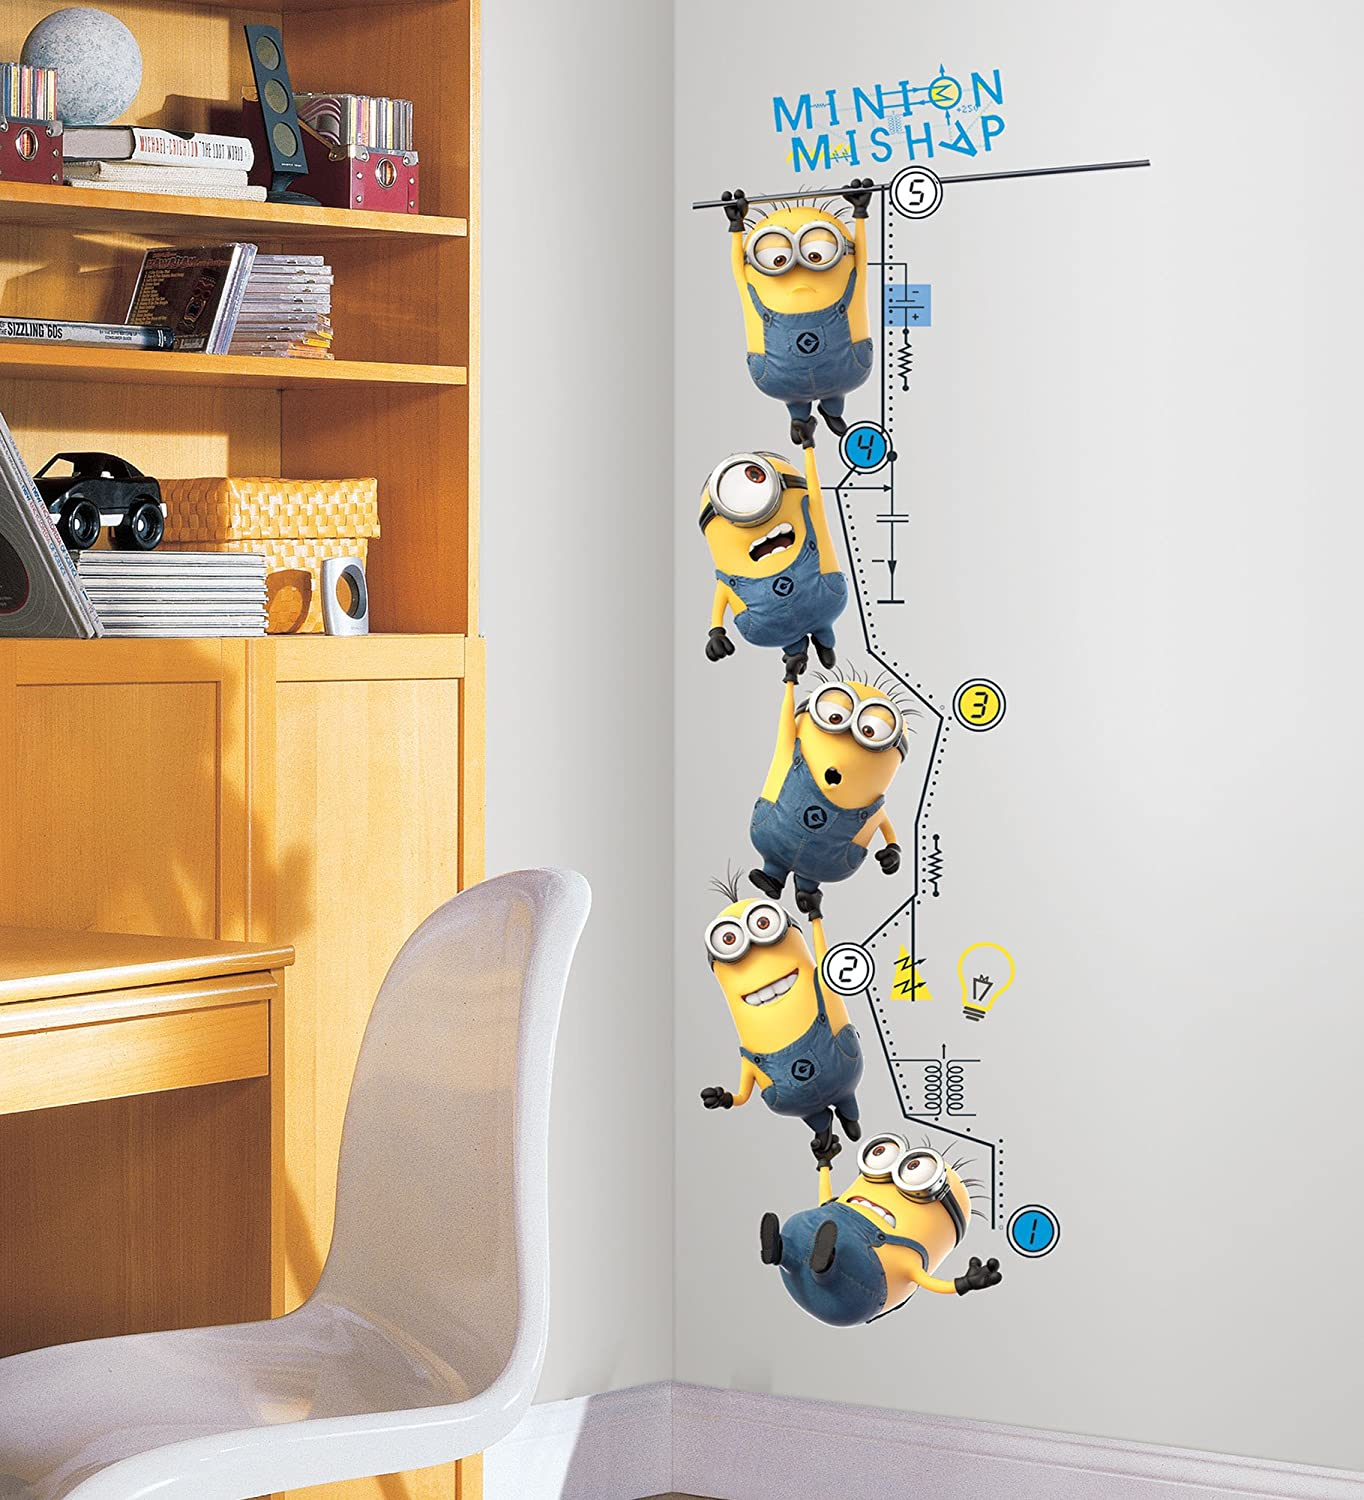 Roommates rmk2107gc despicable me 2 growth chart peel and stick roommates rmk2107gc despicable me 2 growth chart peel and stick wall decals wall decor stickers amazon amipublicfo Gallery